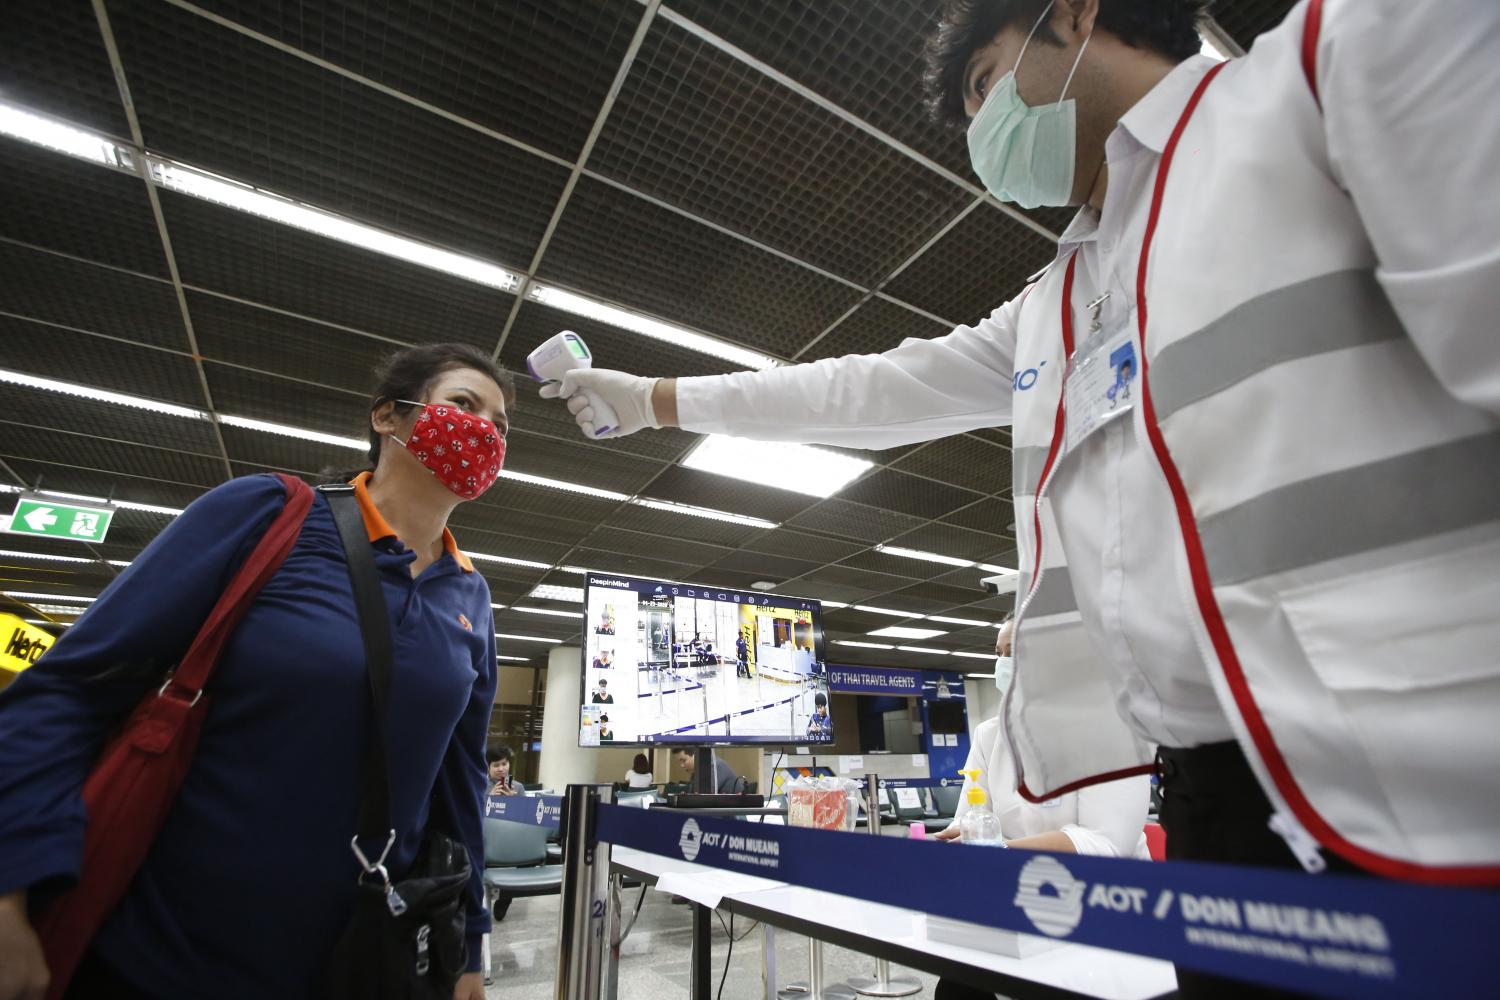 Body temperature checks at Don Mueang airport. Face masks and health screenings have become part of daily life. (Photo by Pornprom Satrabhaya)